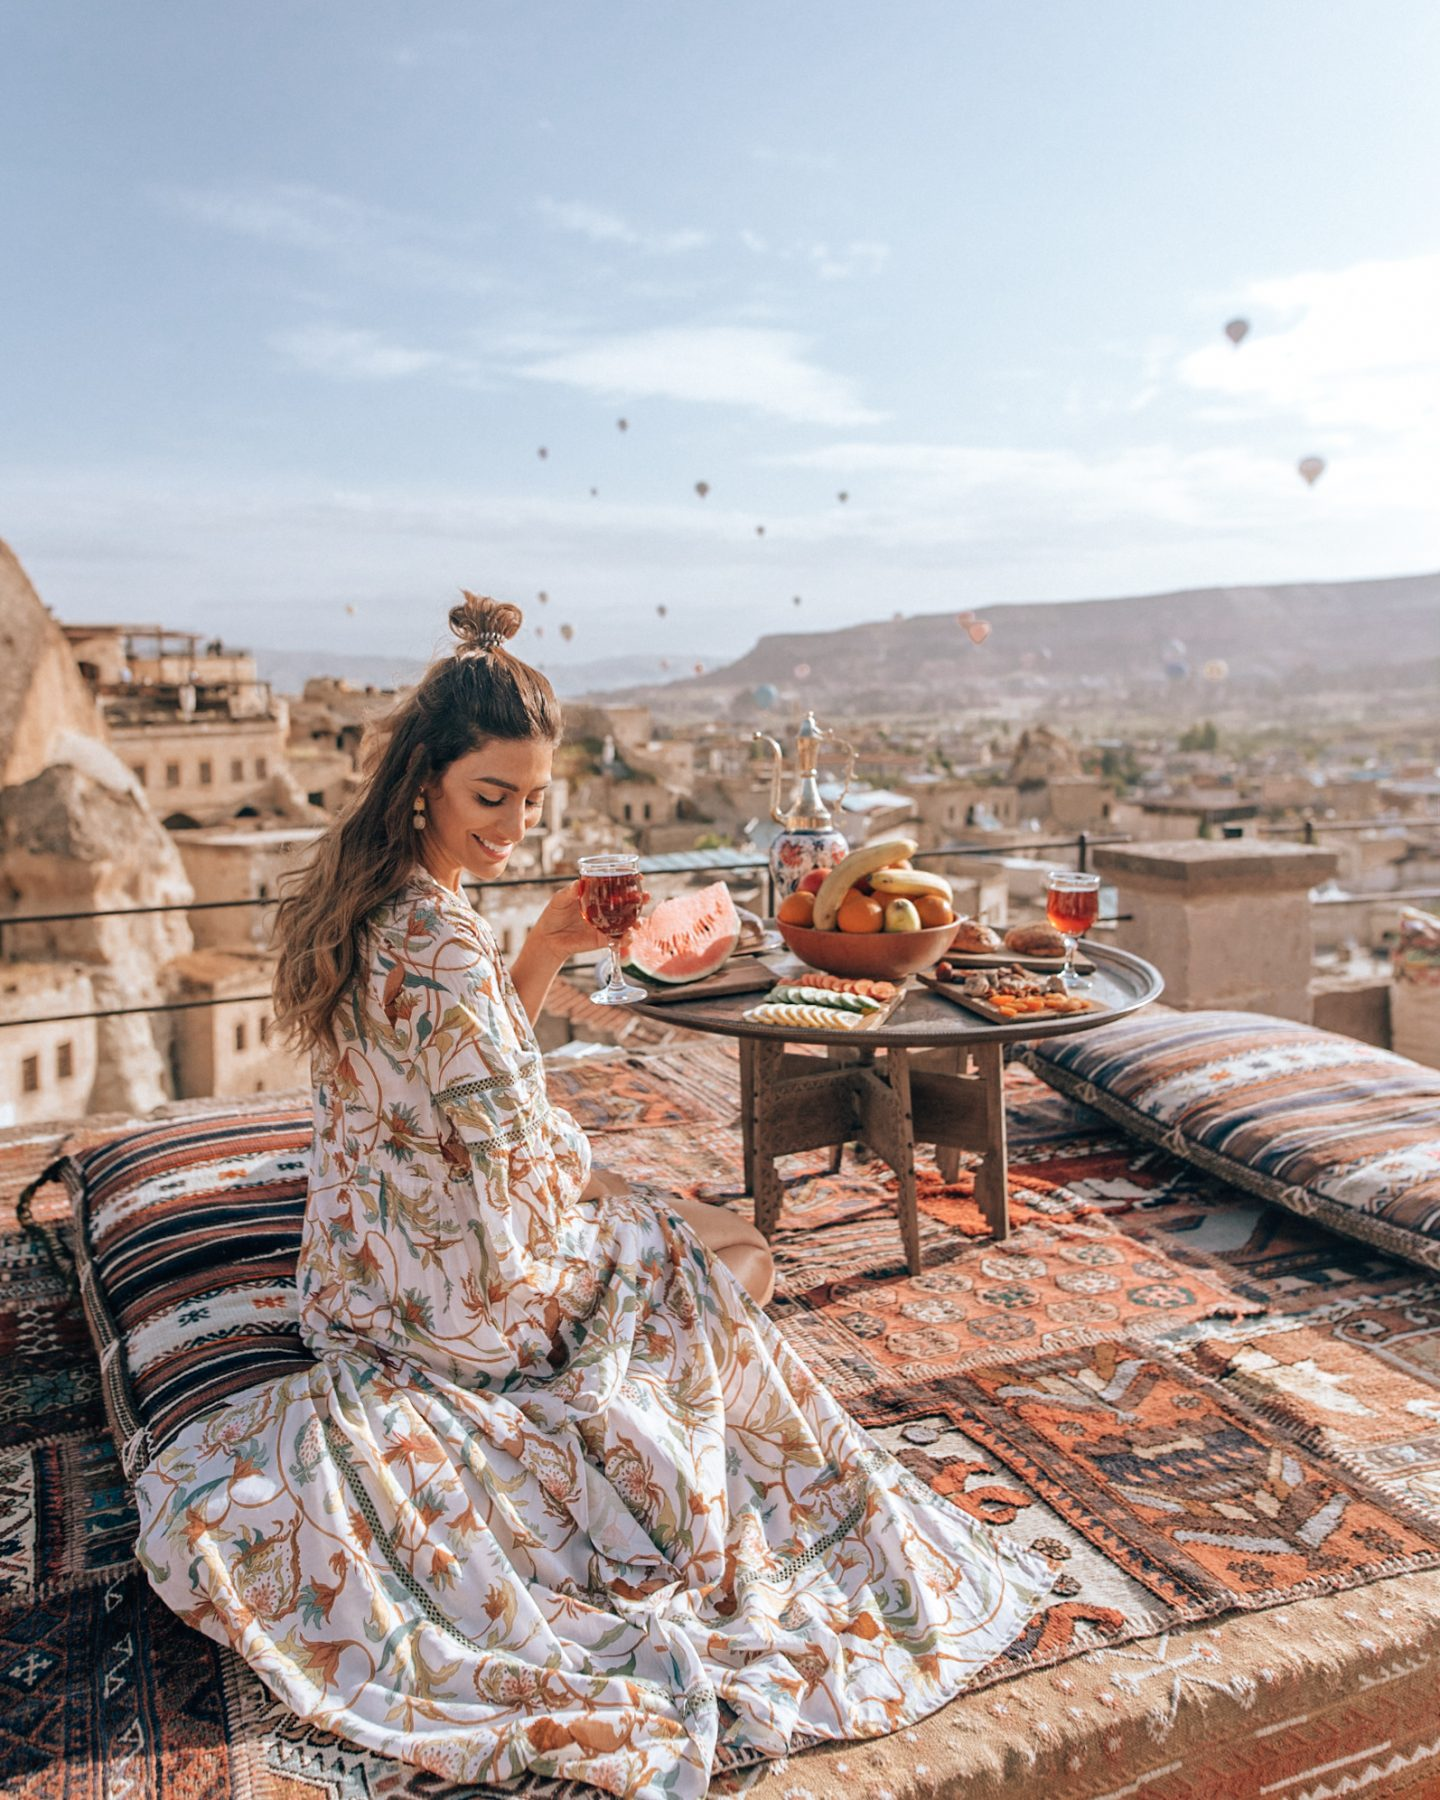 Enjoying breakfast and watching the hot air balloon sunrise in Cappadocia at Sultan Cave Suites